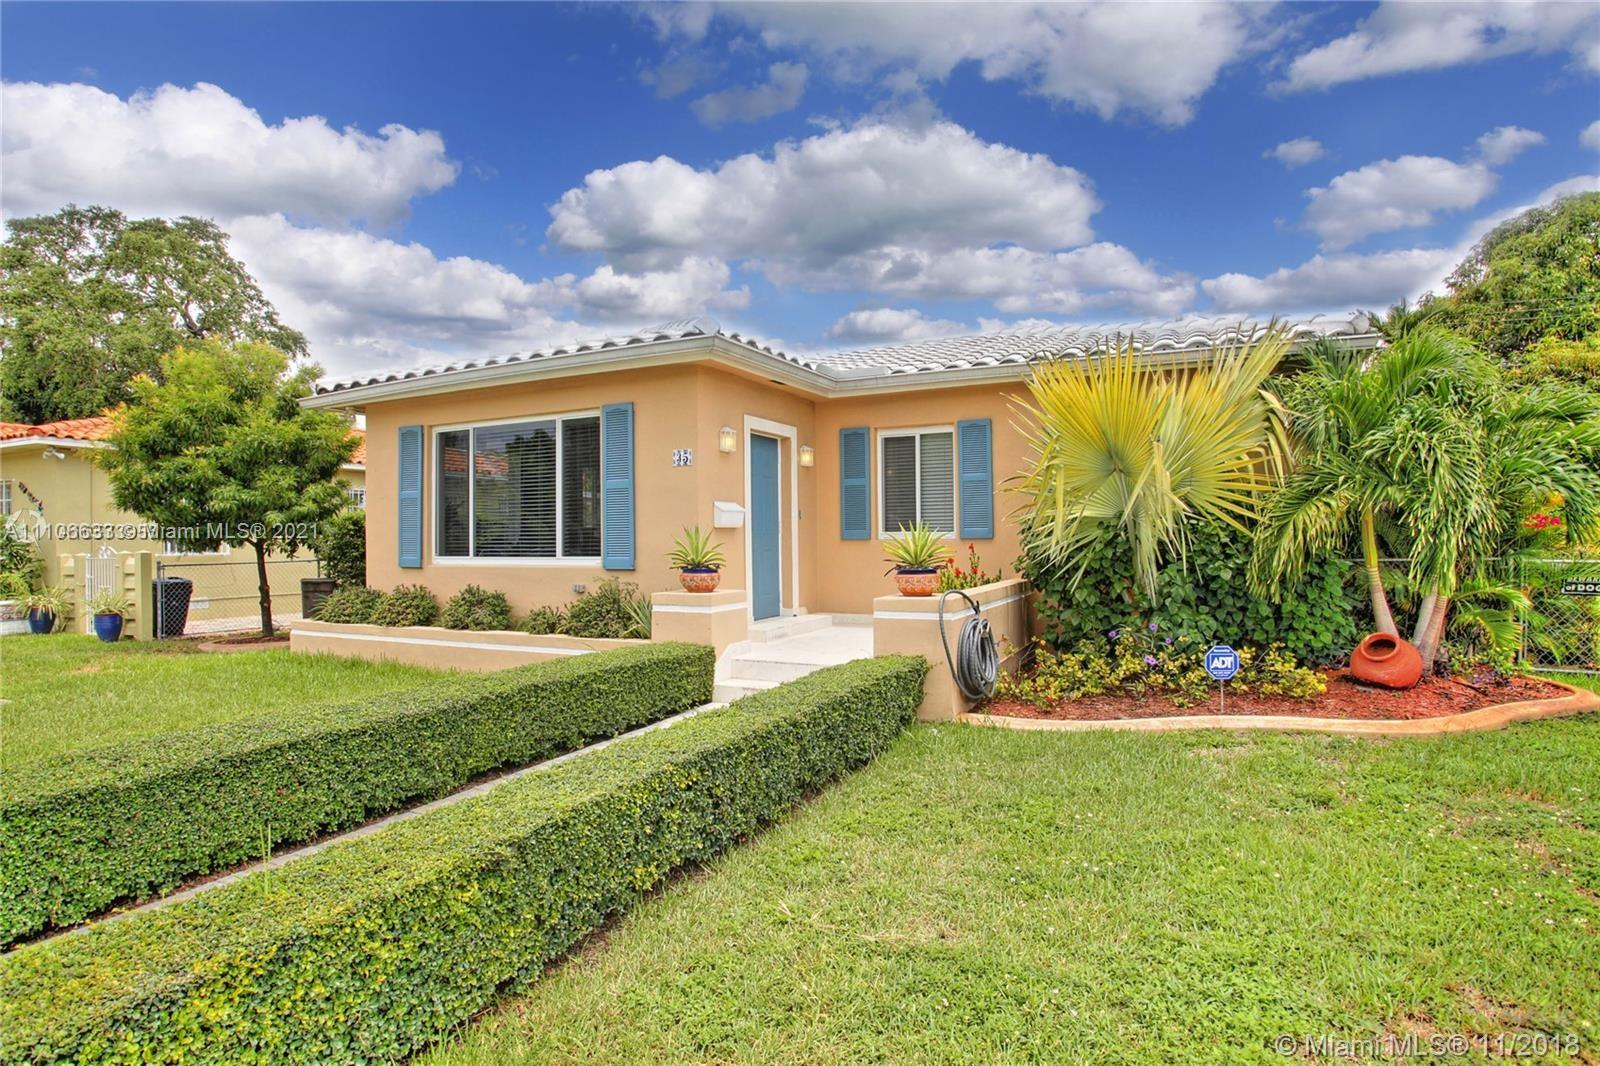 Single Family Home,For Rent,35 Veragua Ave, Coral Gables, Florida 33134,Brickell,realty,broker,condos near me